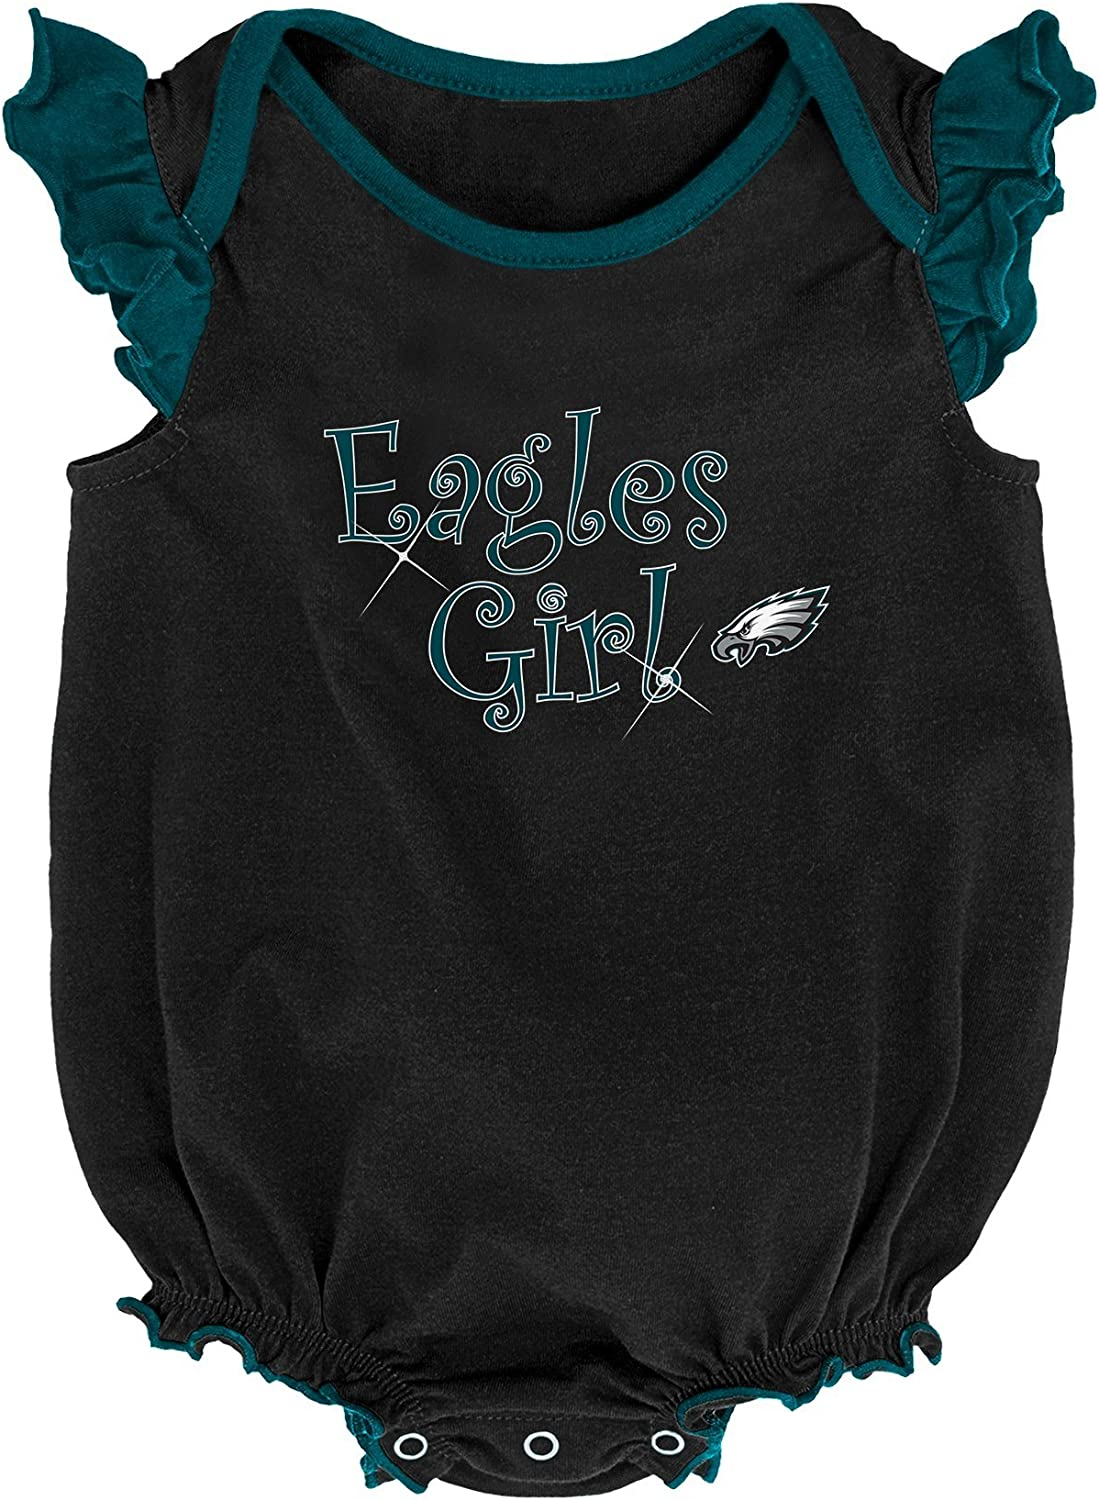 Outerstuff NFL Baby-Girls Newborn /& Infant Homecoming Bodysuit Combo Pack